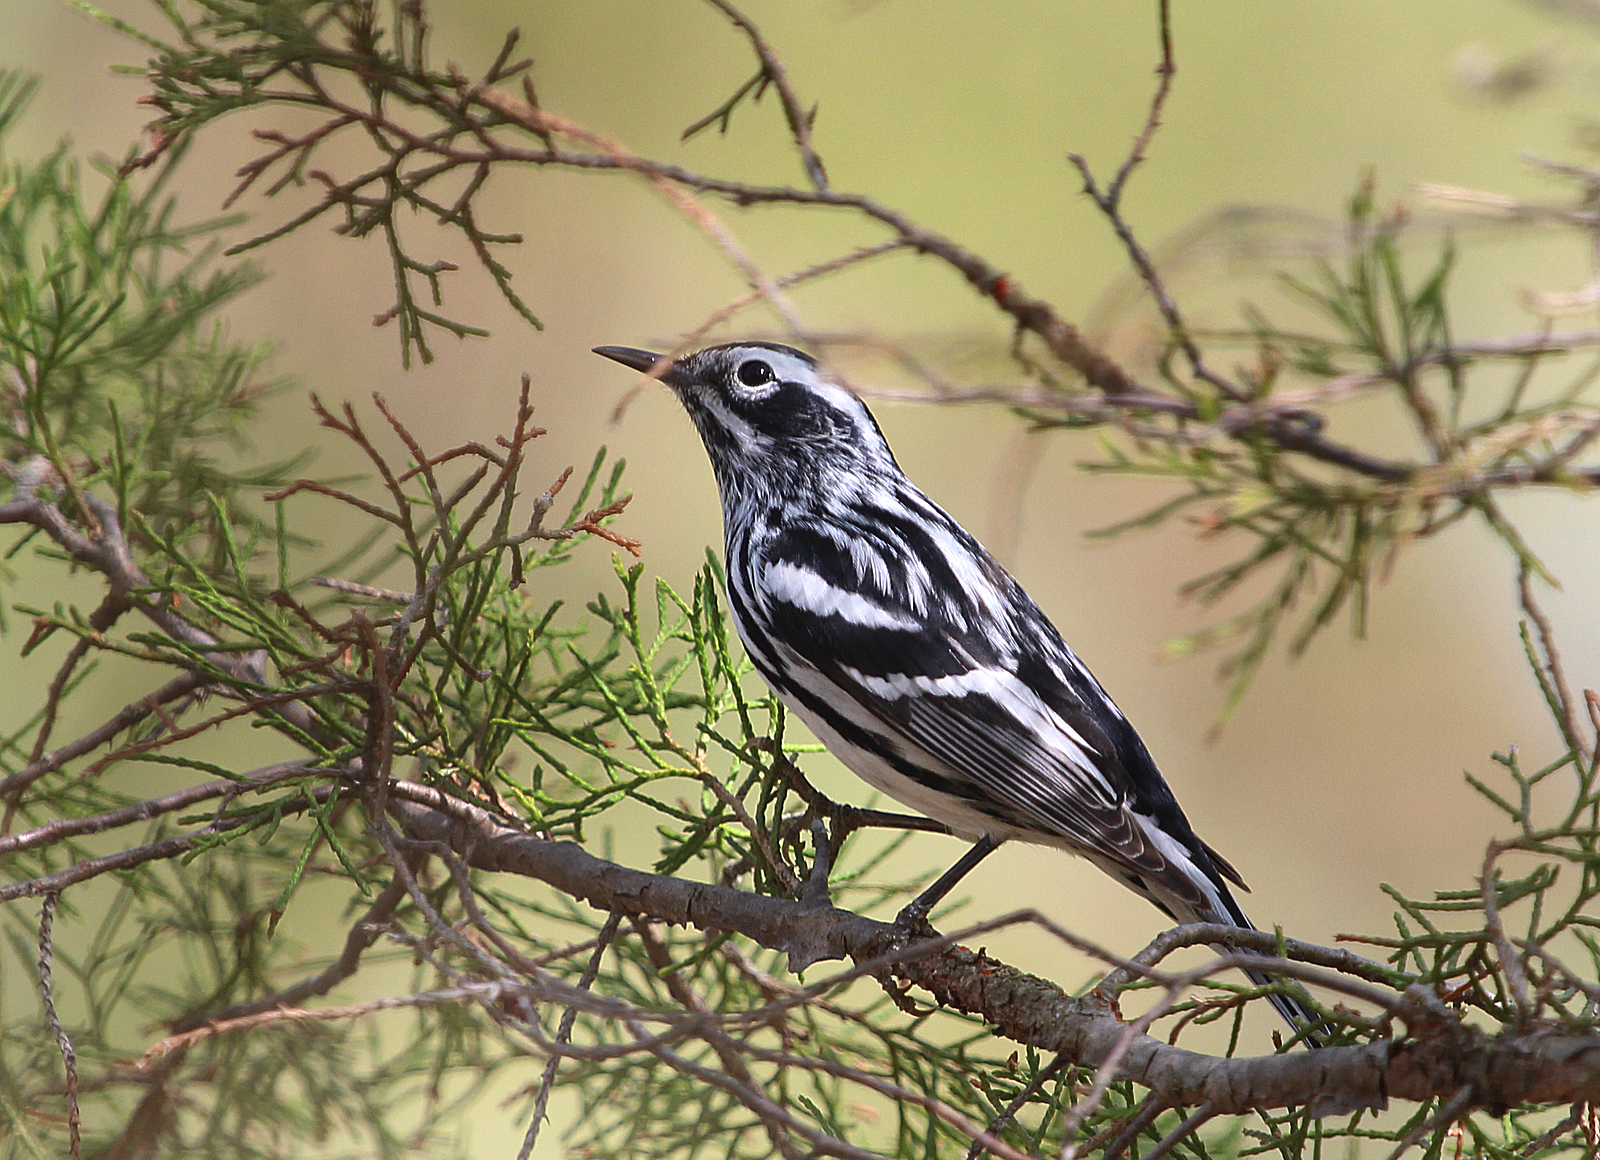 Photo by Chris Bosak A Black-and-White Warbler looks throughout an evergreen for food at Selleck's Woods in Darien, Conn., 2015.